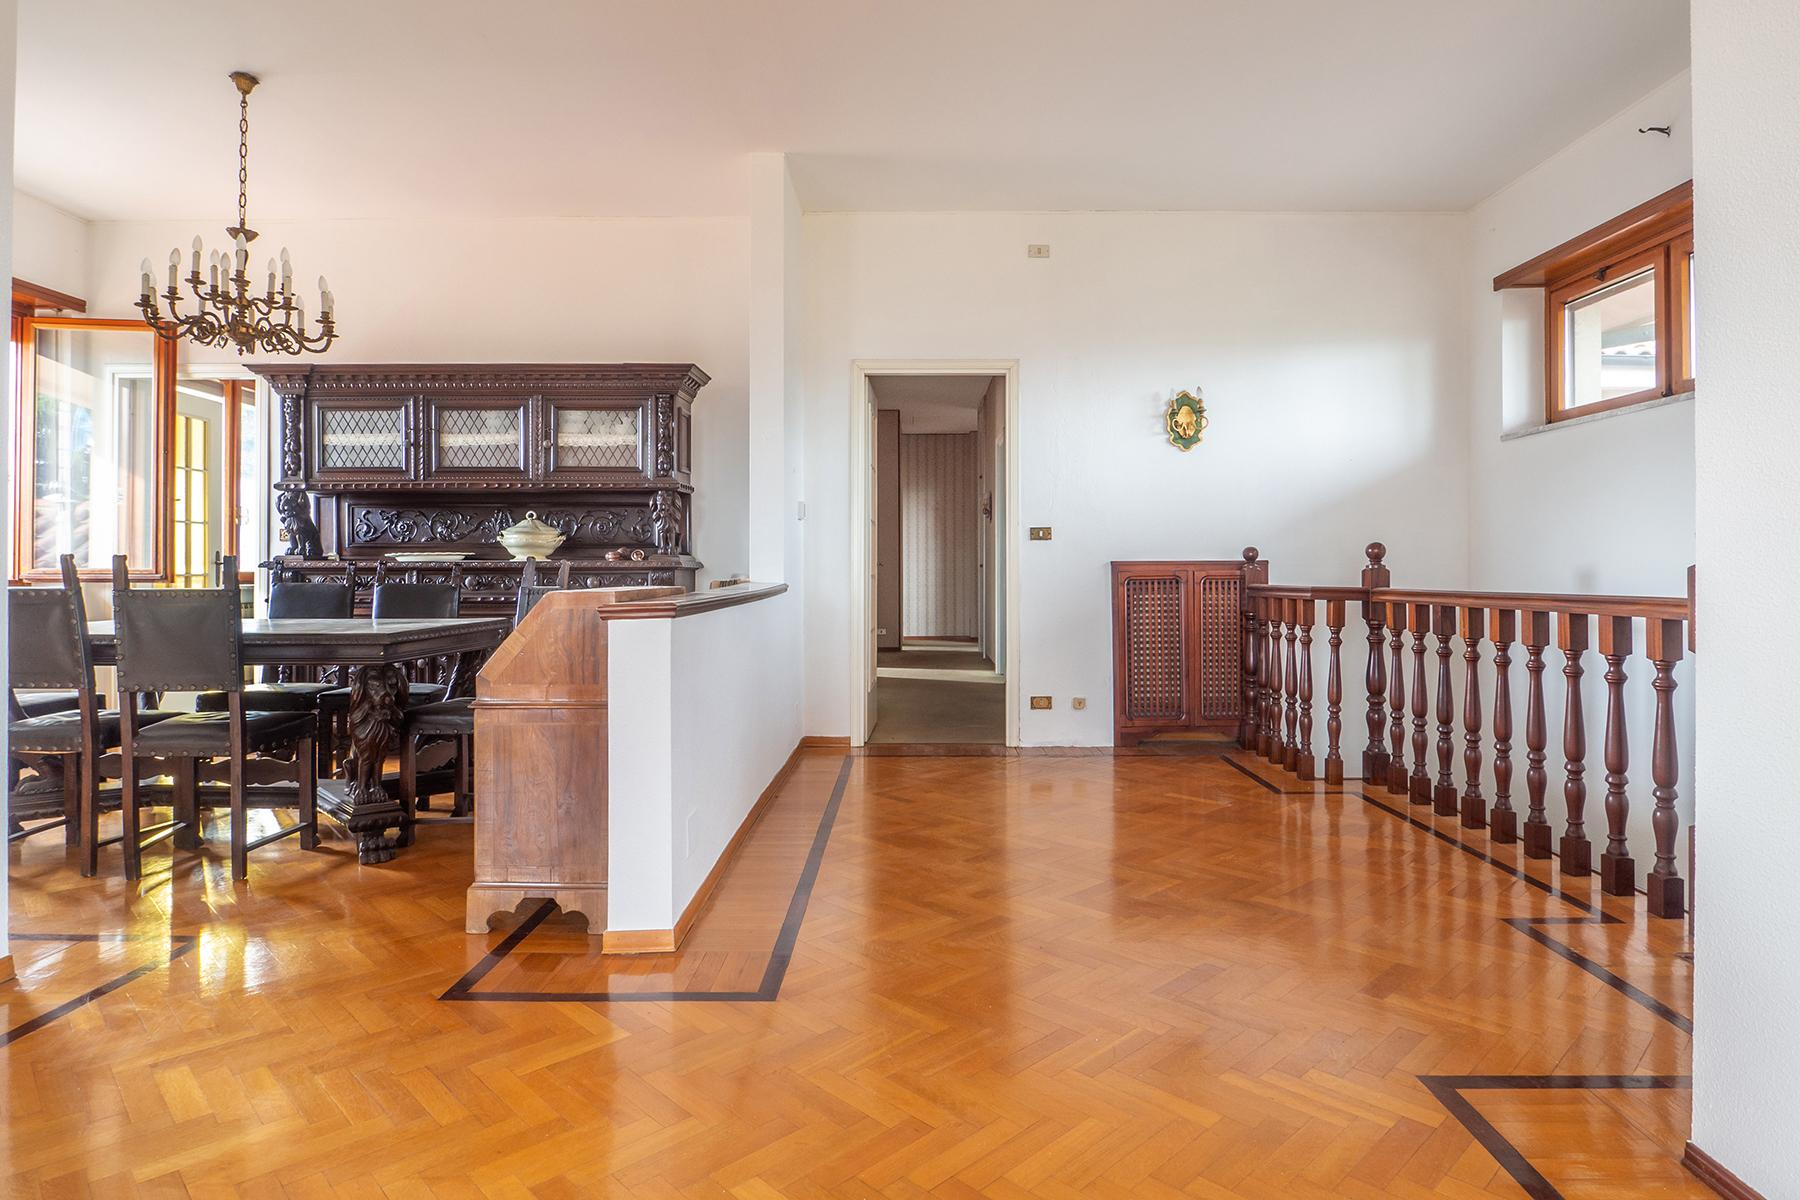 Villa with private garden and  stunning view of the city of Turin - 5